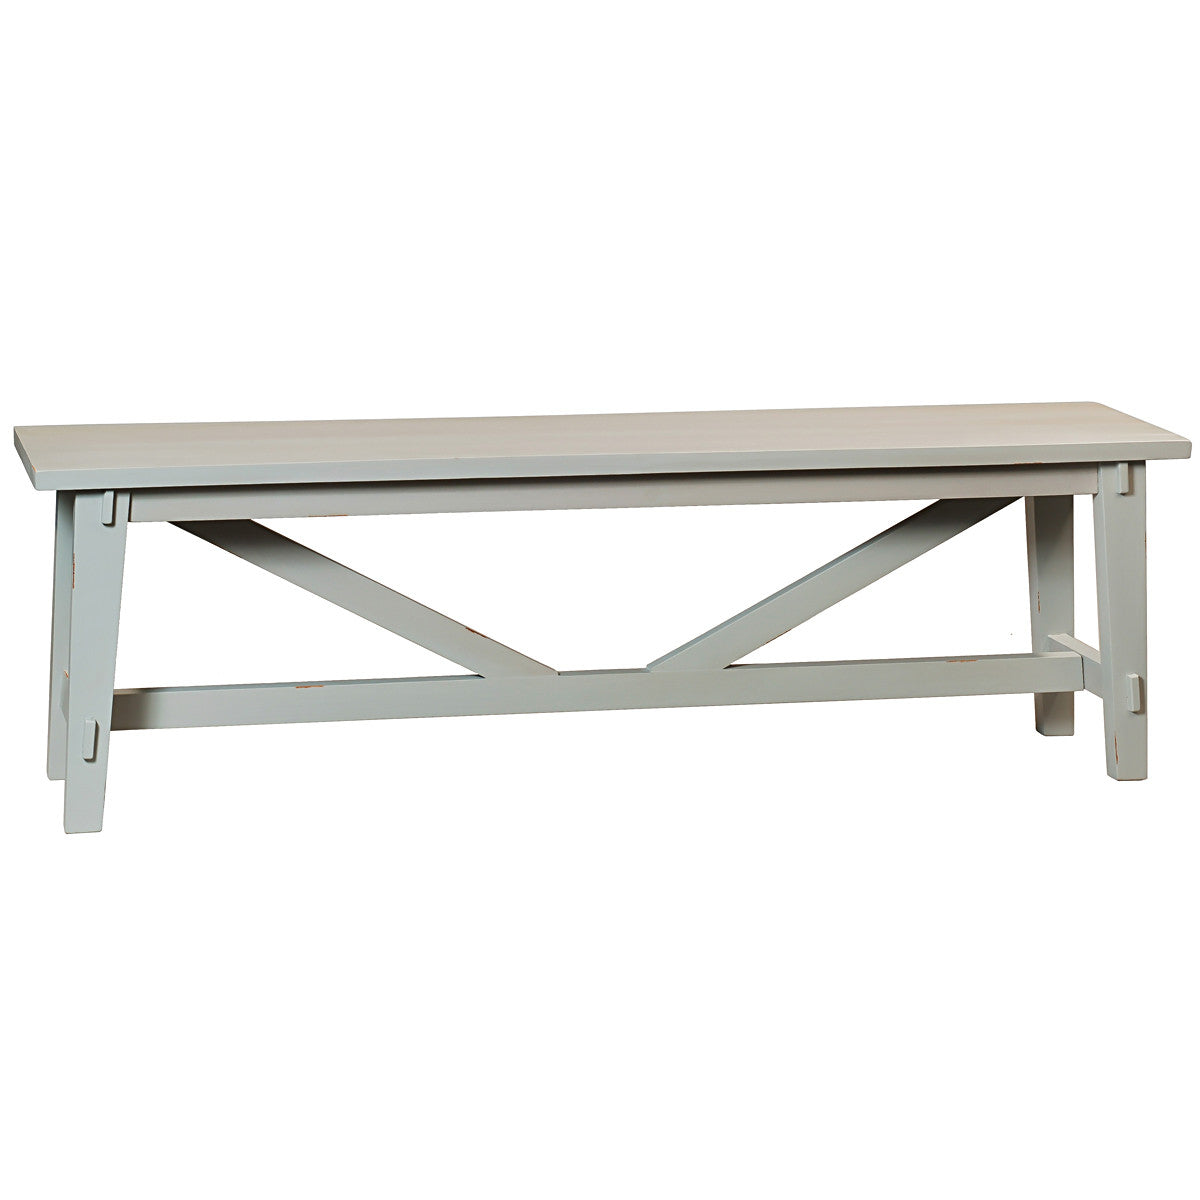 Rustic Bench Glacier Gray Wrightwood Furniture